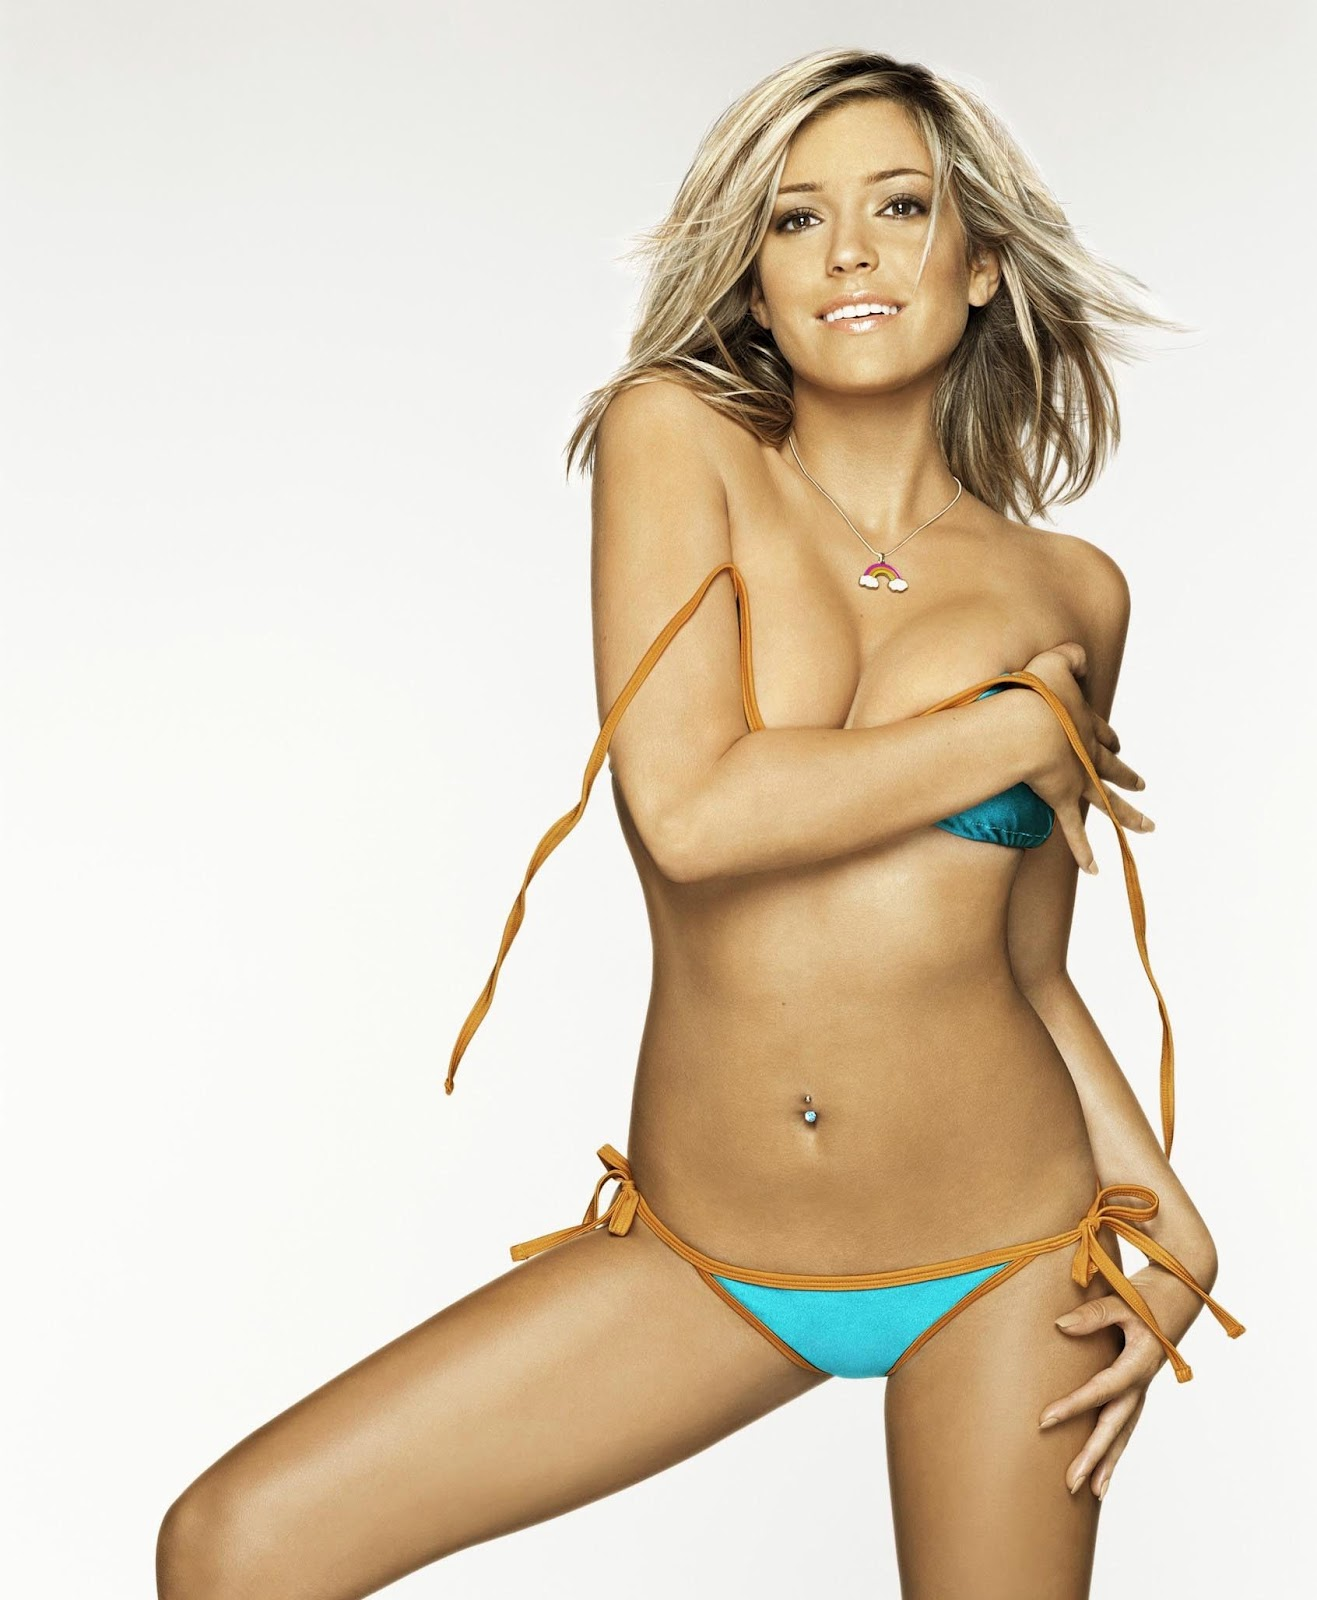 Kristin Cavallari Lingerie photoshoot | Celebrity Pictures | Hot Images | HD Wallpapers